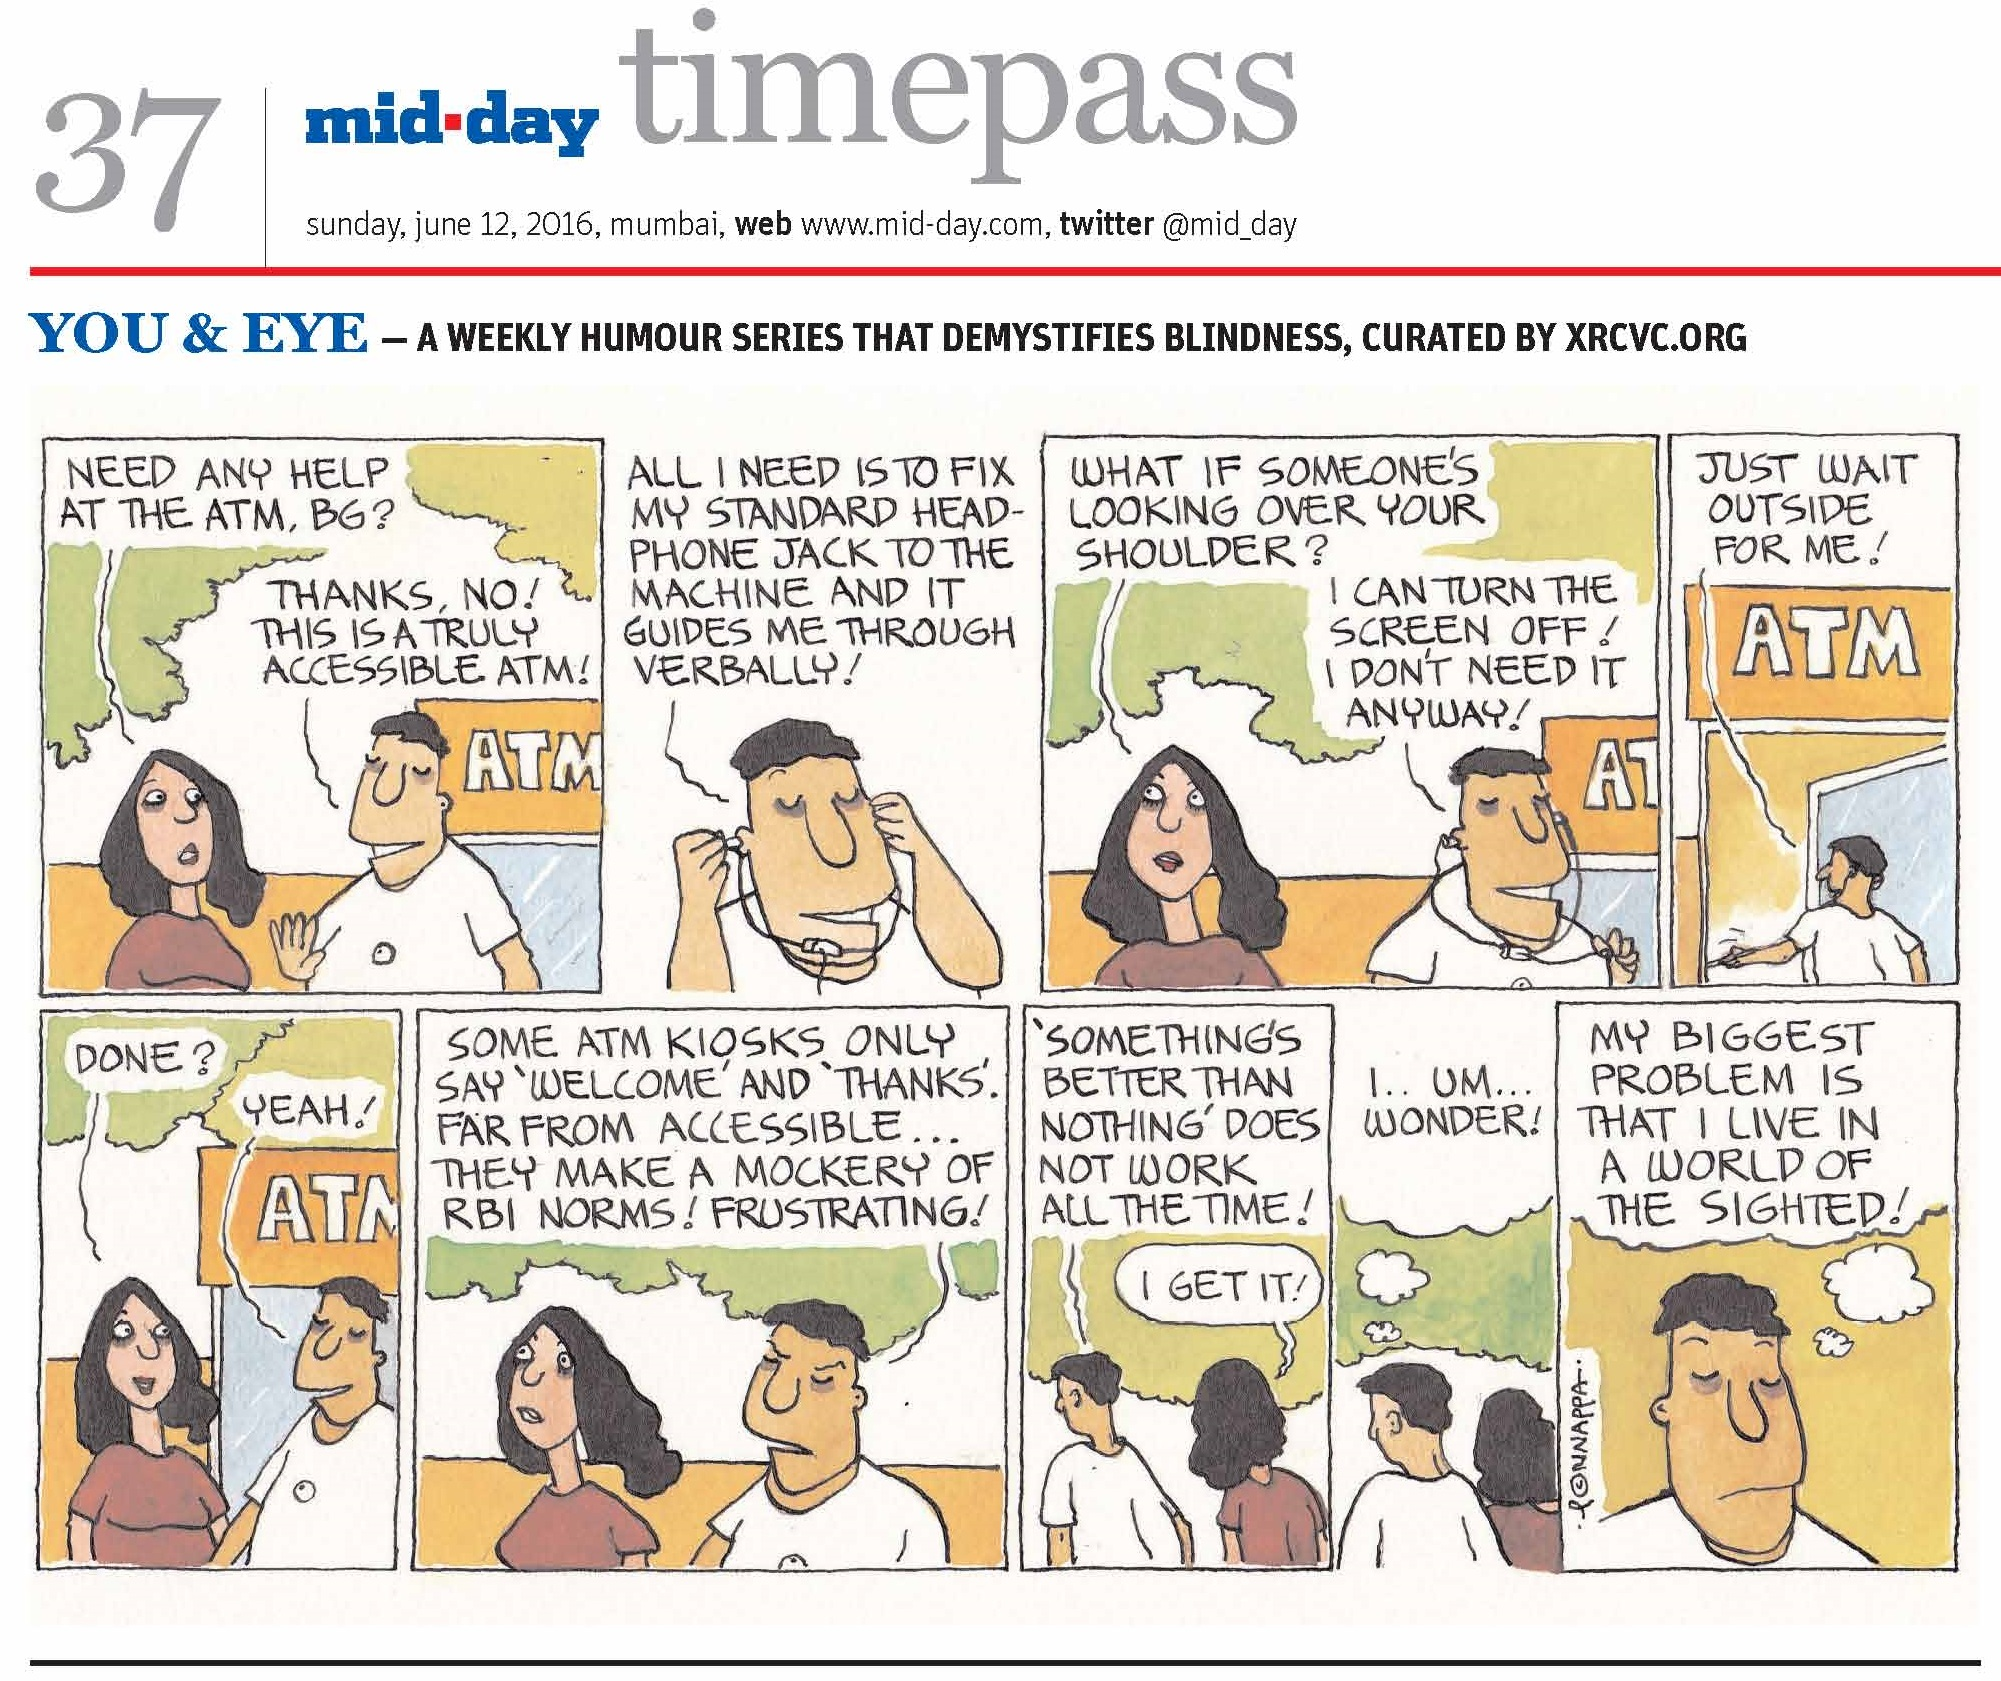 Page 37 mid-day timepass, sunday, june 12, 2016, mumbai, web: www.mid-day.com, twitter @mid_day, YOU & EYE – A WEEKLY HUMOUR SERIES THAT DEMYSTIFIES BLINDNESS, CURATED BY XRCVC.ORG, Image description: A cartoon strip with 9 frames… Frame 1: (The visually impaired man – BG – and his friend – Tippy – standing outside an ATM) Tippy: Need any help at the ATM, BG? BG: Thanks, no! This is a truly accessible ATM! Frame 2: (A close-up of BG putting a pair of earphones on) BG: All I need is to fix my standard headphone jack to the machine, and it guides me through verbally! Frame 3: (BG and Tippy standing outside the ATM) Tippy: What if someone's looking over your shoulder? BG: I can turn the screen off! I don't need it anyway! Frame 4: (BG enters through the open door of the ATM) BG: Just wait outside for me! Frame 5: (BG and Tippy standing outside the ATM) Tippy: Done? BG: Yeah! Frame 6: (BG seemingly annoyed as he walks with Tippy) BG: Some ATM kiosks only say 'Welcome' and 'Thanks'. Far from accessible… they make a mockery of RBI norms! Frustrating! Frame 7: (BG and Tippy walking together) BG: 'Something's better than nothing' does not work all the time! Tippy: I get it! Frame 8: (As BG walks with Tippy, a thought bubble shows him thinking: I… um… wonder!) Frame 9: (A close-up of BG thinking: My biggest problem is that I live in a world of the sighted! (Signed Ponnappa, in Frame 9)